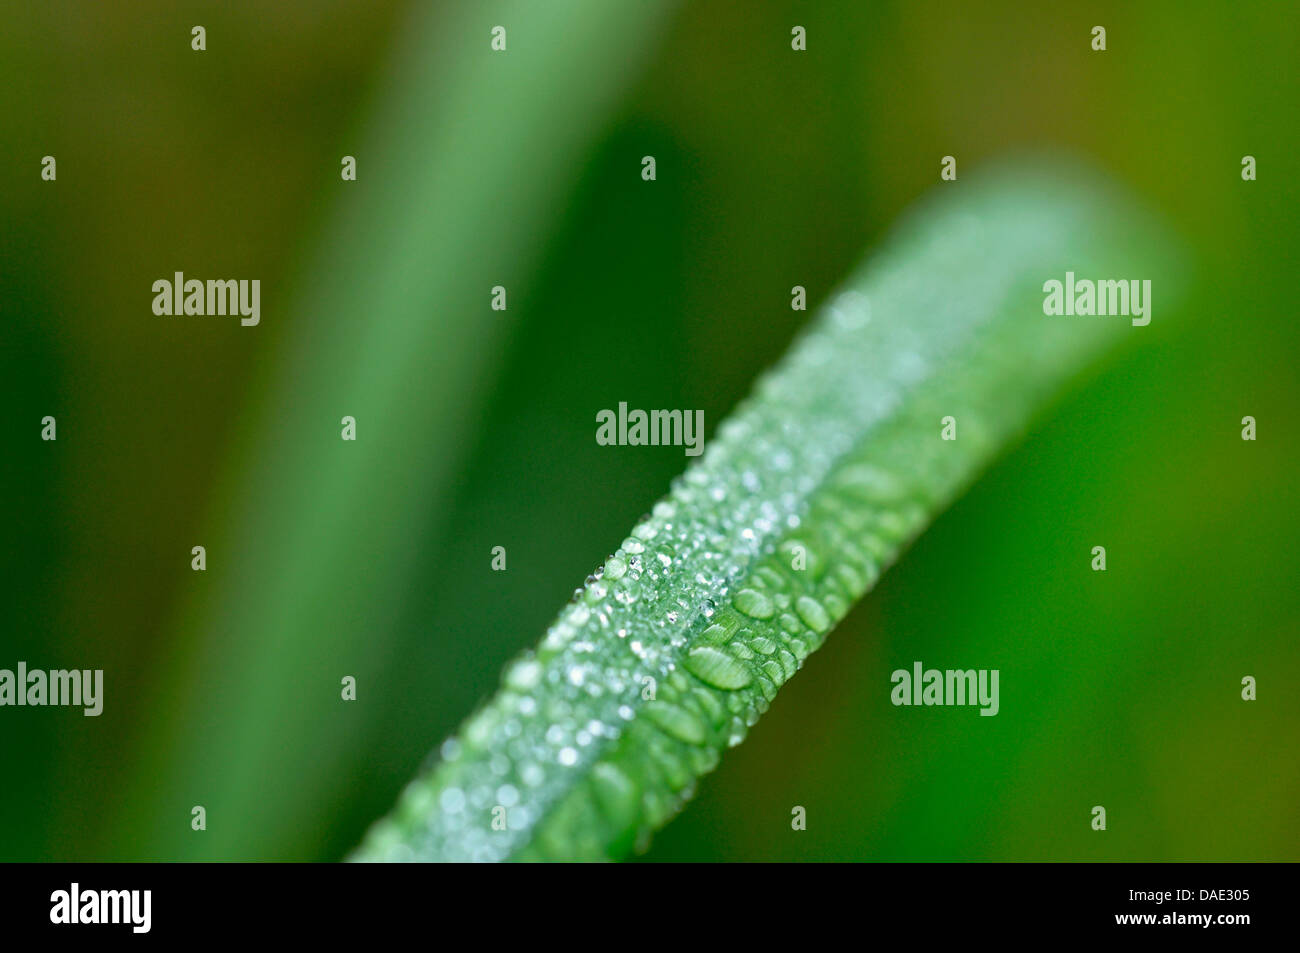 dewdrops on a sedge leaf, Germany - Stock Image